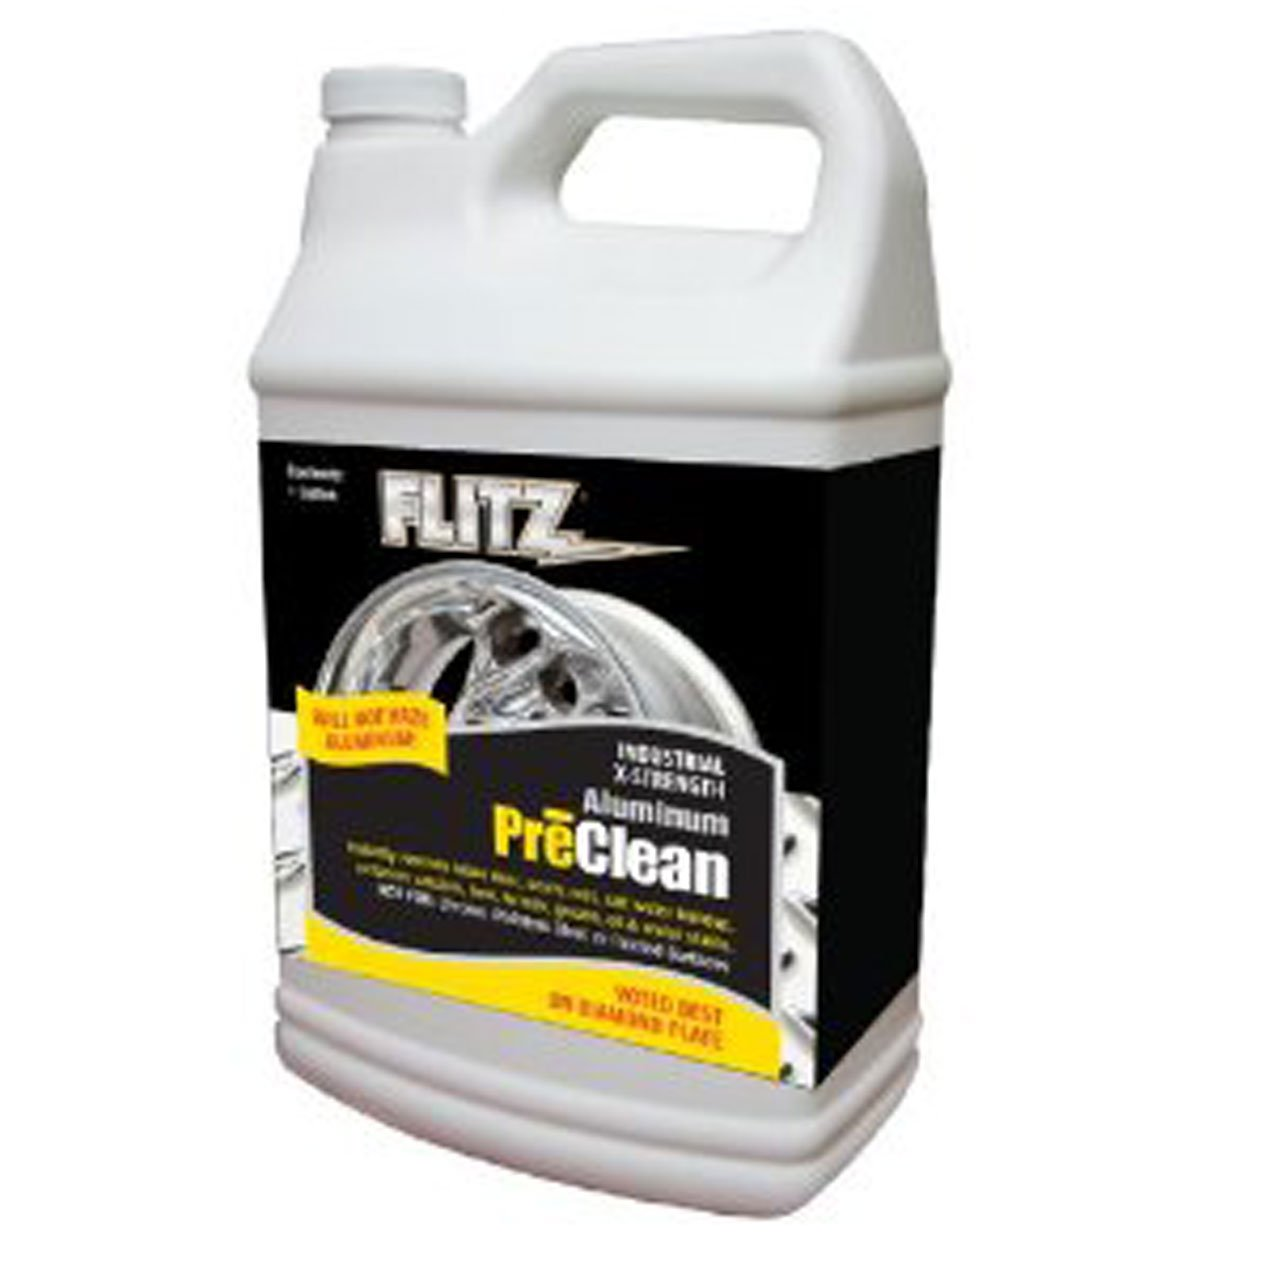 Flitz AL 01710 Preclean Industrial Strength, 1-Gallon, Small, Aluminium